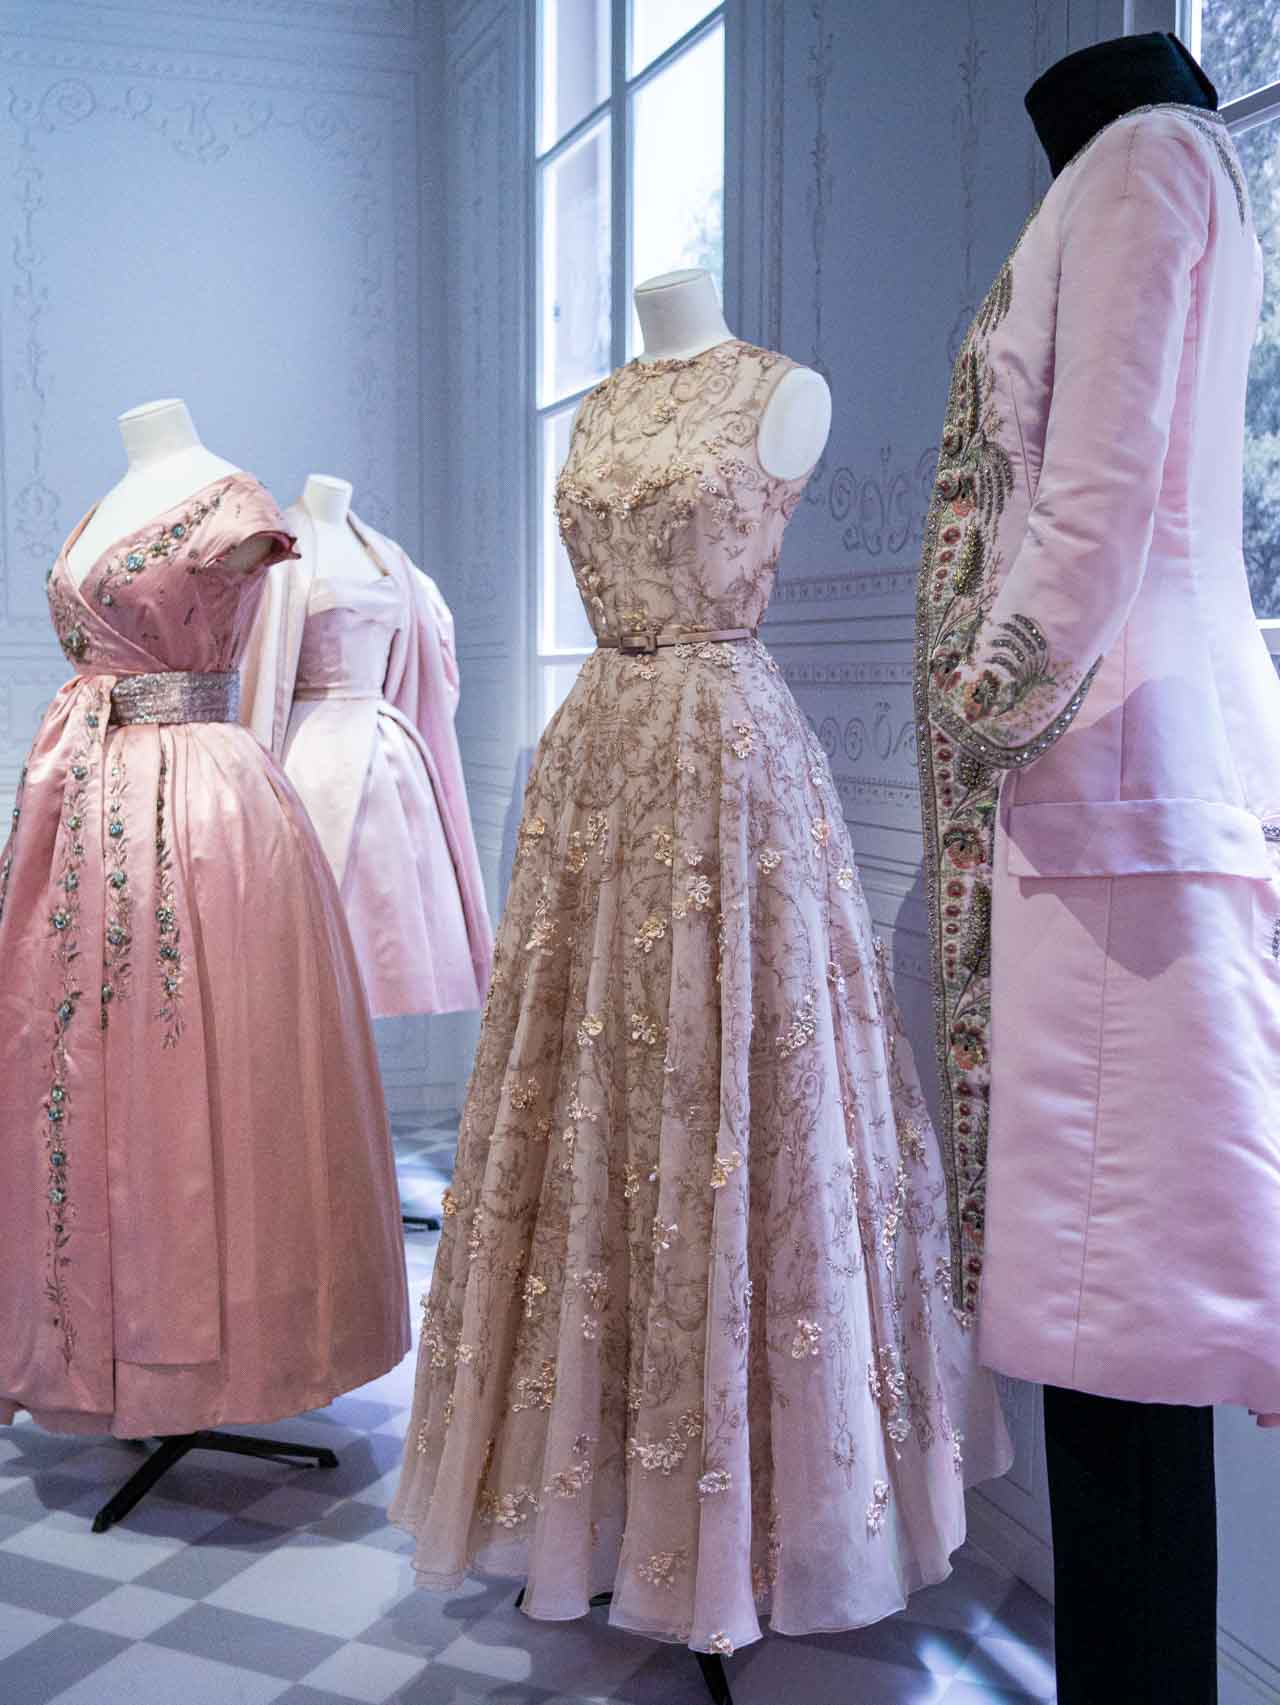 Christian Dior: Designer of Dreams. The Cutting Class. Image 2.